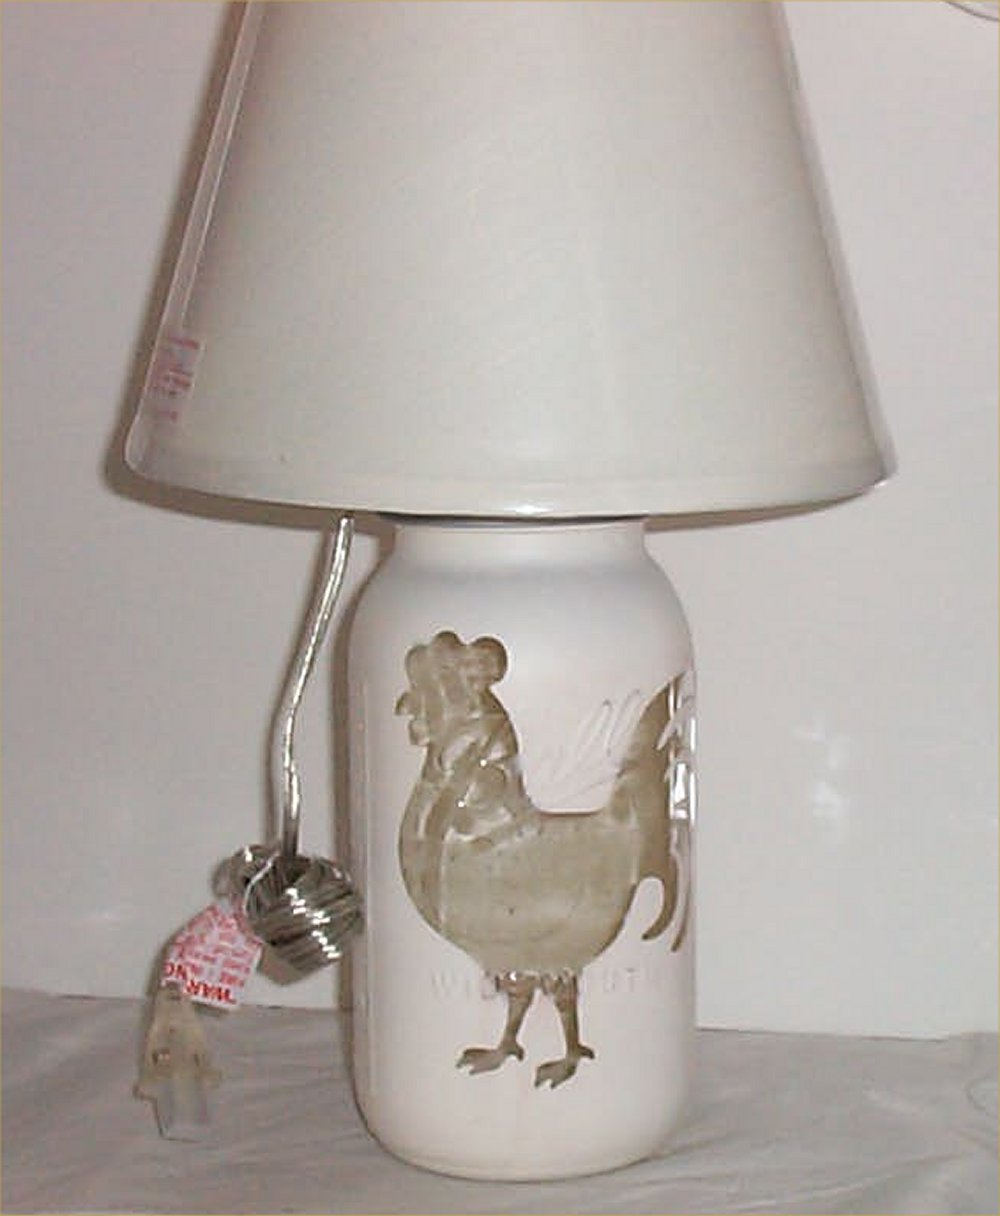 Glass Jar Lamp Shade Mason Jar Half Gallon Rooster Lamp Shade Country Farm Light Home